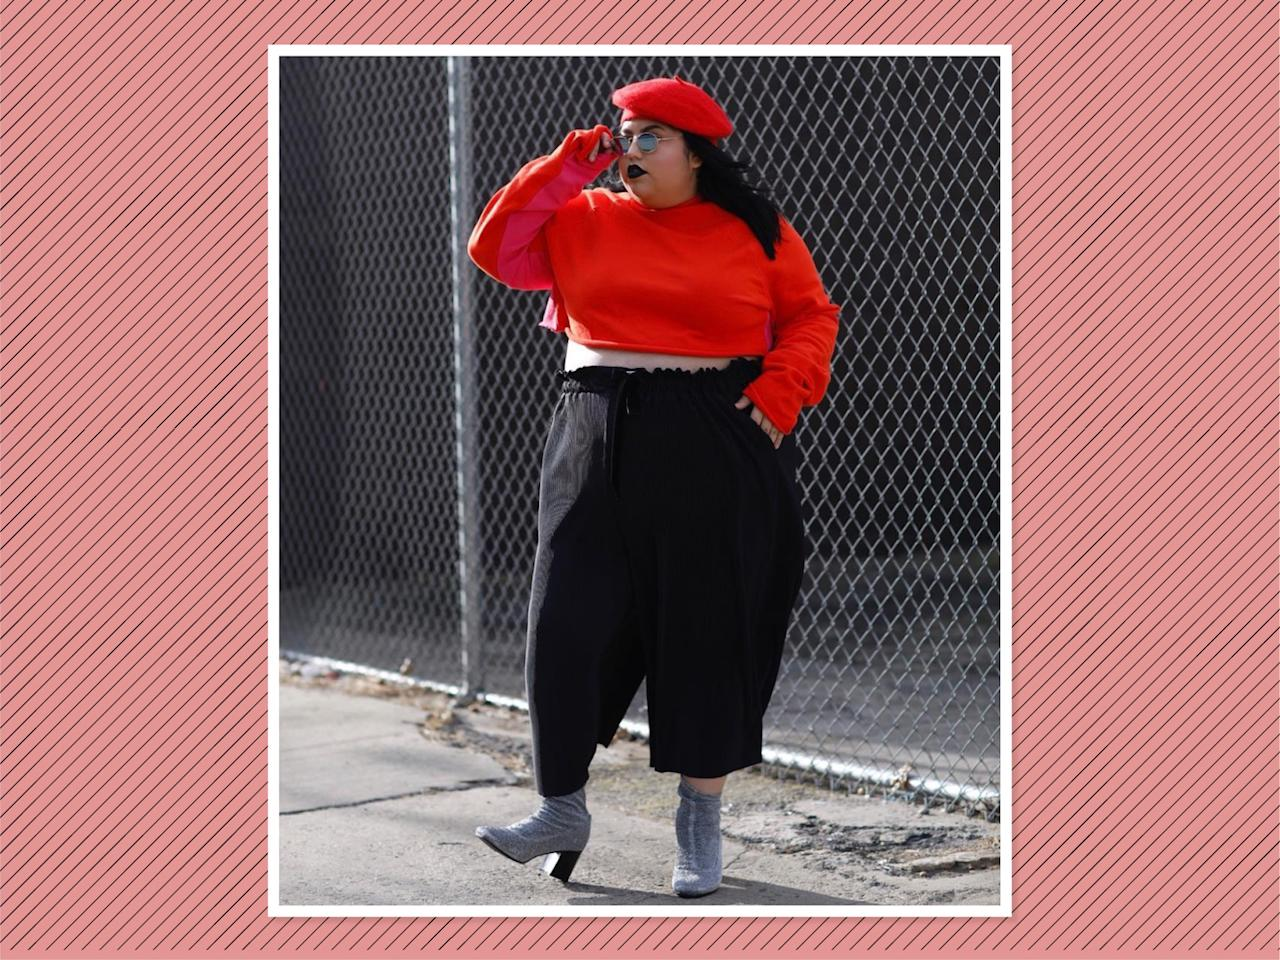 "<p>A pair of basic black cropped pliseé pants — like <a rel=""nofollow"" href=""https://premme.us/collections/bottoms/products/straight-leg-paperbag-waist-pant"">these from Premme</a>, $72 — are supercomfortable, and they go with just about everything… especially a red crop top and beret combo. (Photo: <a rel=""nofollow"" href=""https://www.instagram.com/p/BdwSkAgludK/?hl=en&taken-by=thisisjessicatorres"">Jessica Torres</a> via Instagram) </p>"